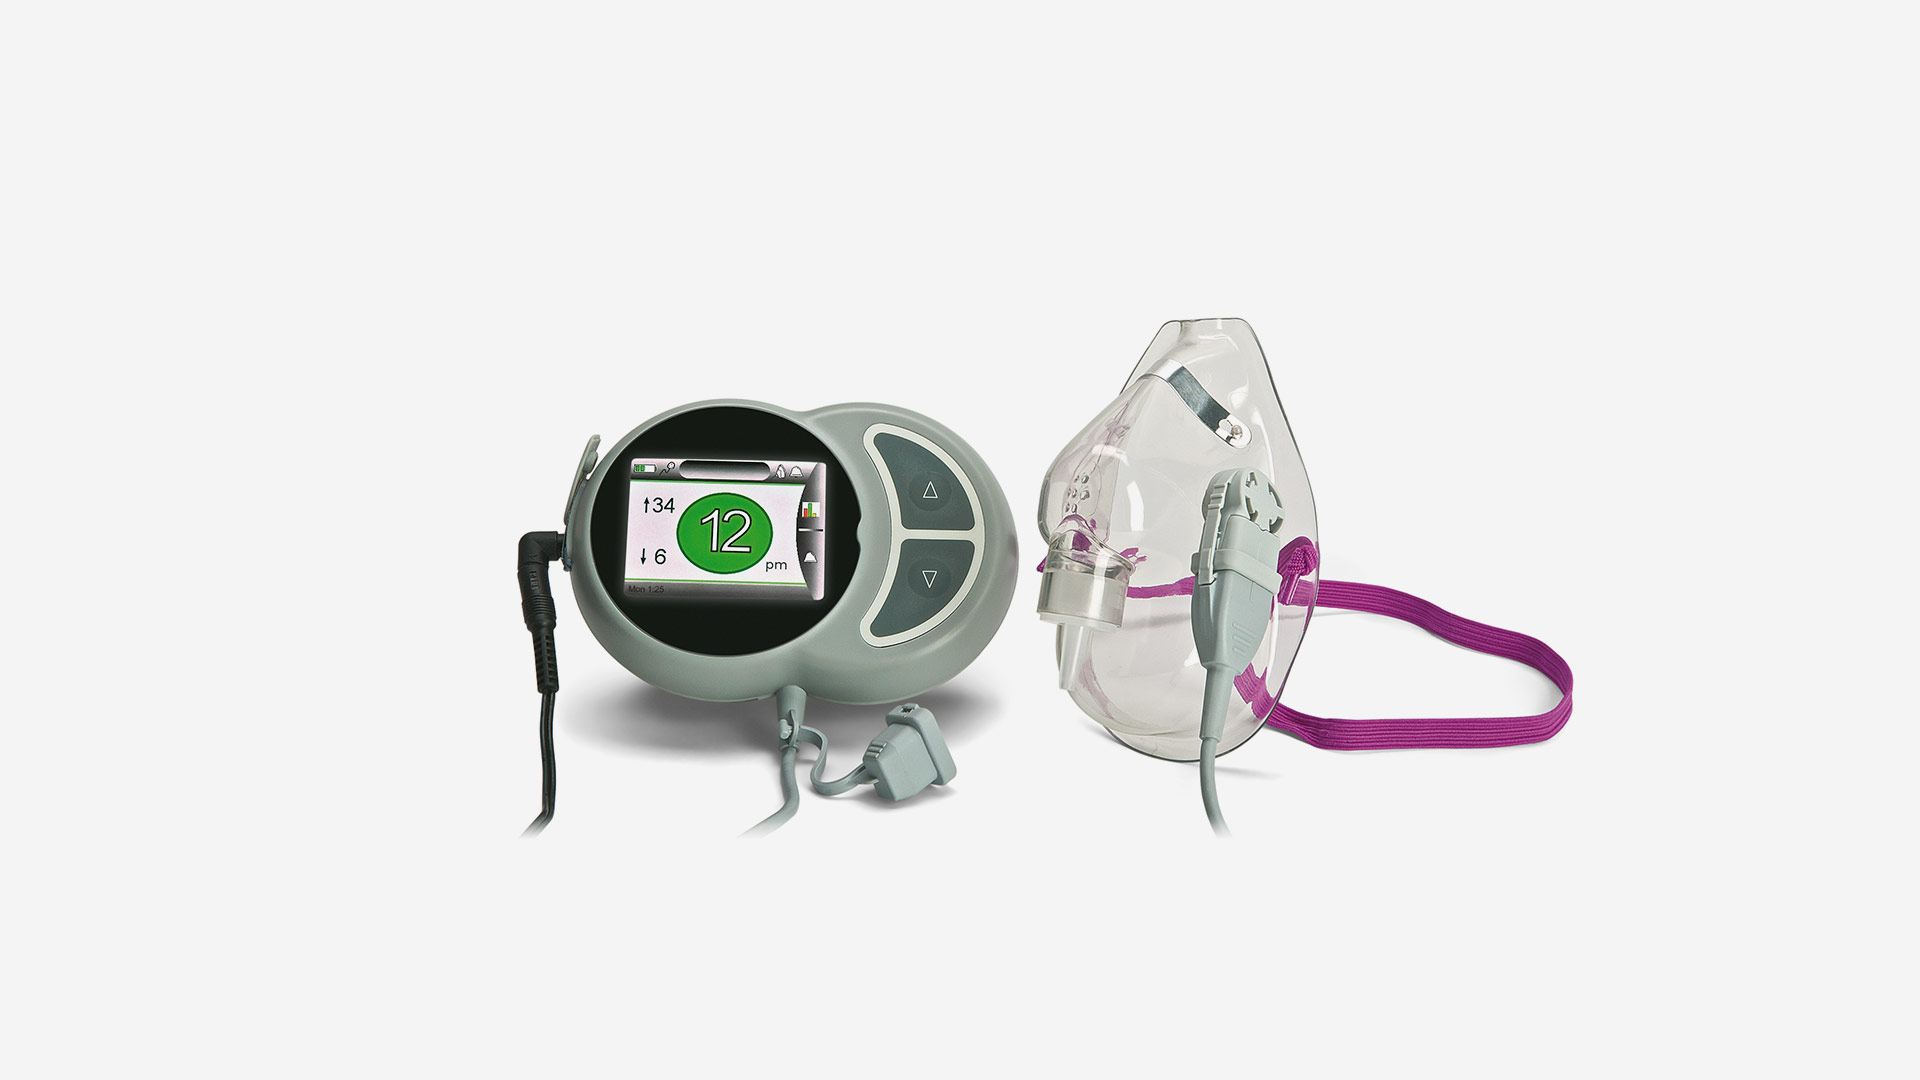 Breathing rate monitor for hospitals